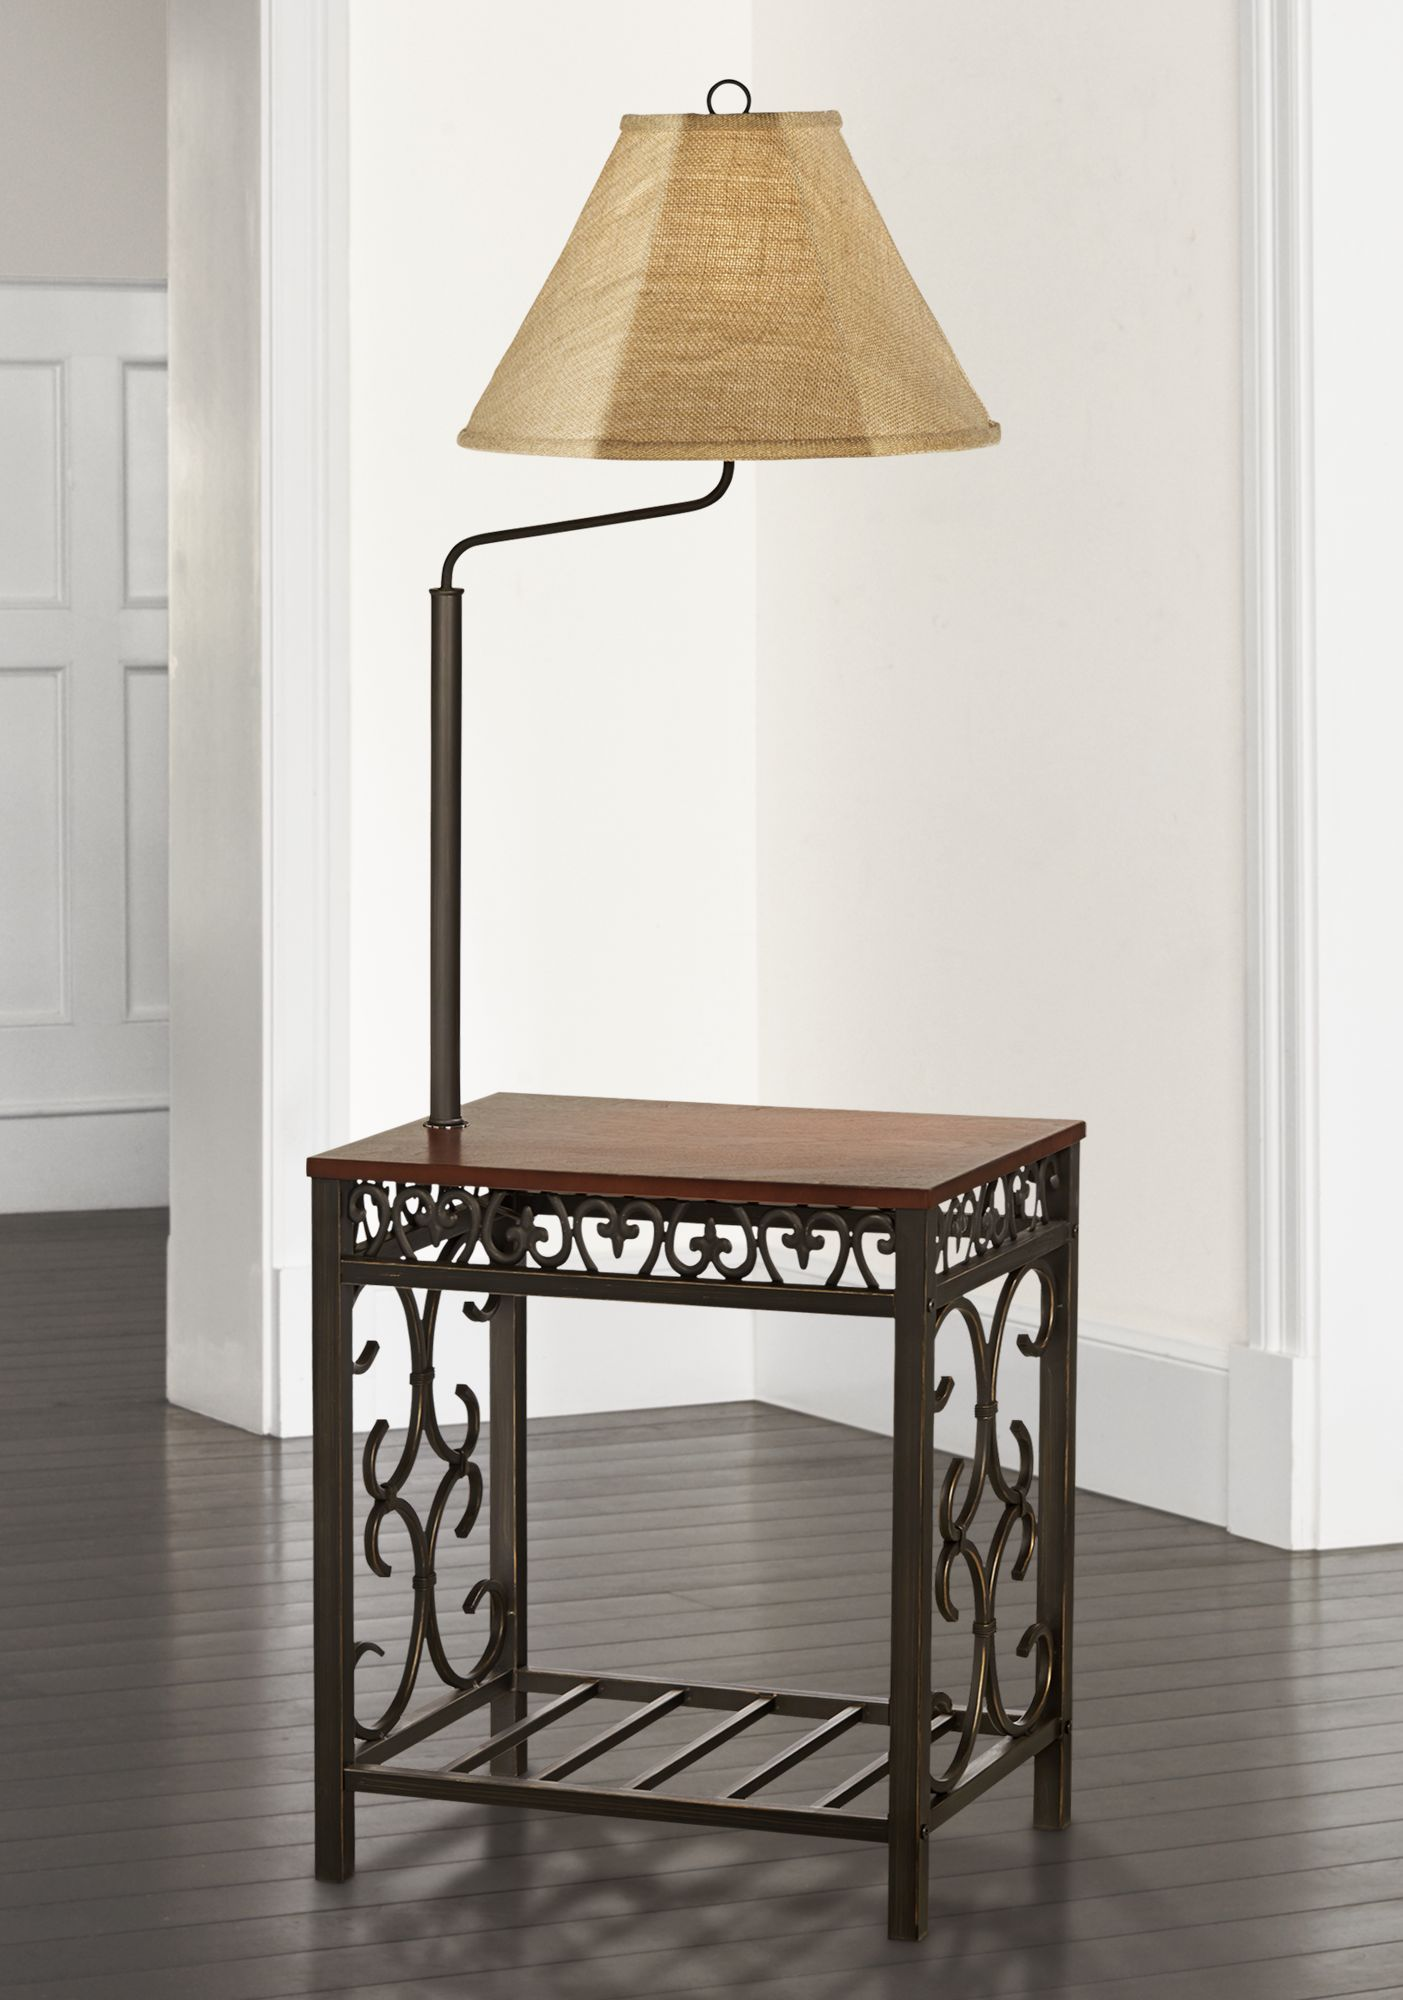 Charmant Travata End Table Floor Lamp